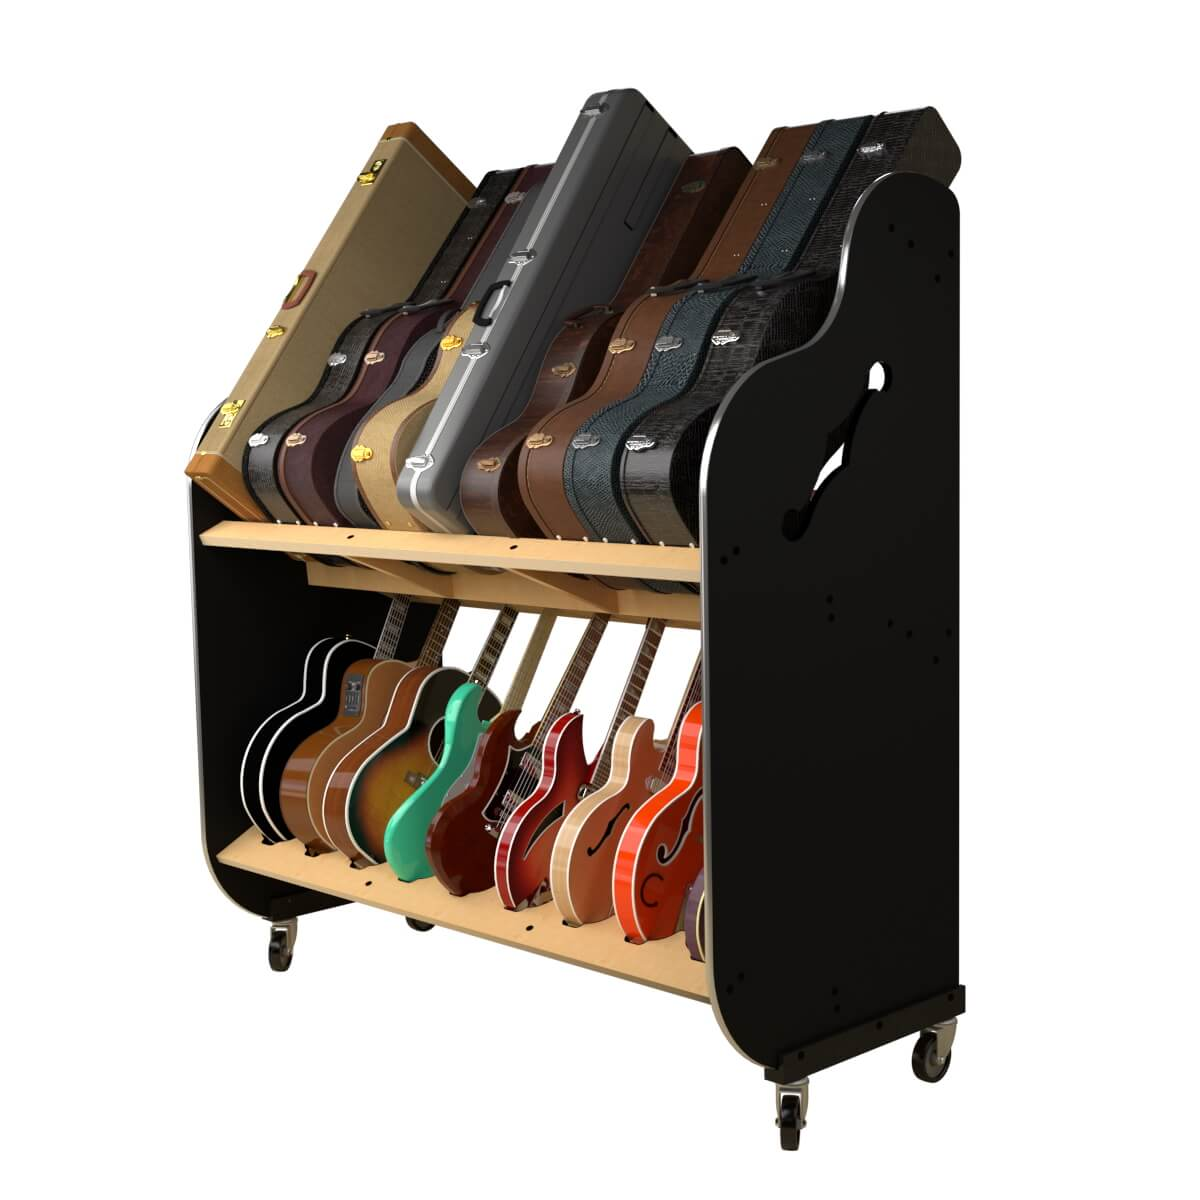 For Guitars & Cases